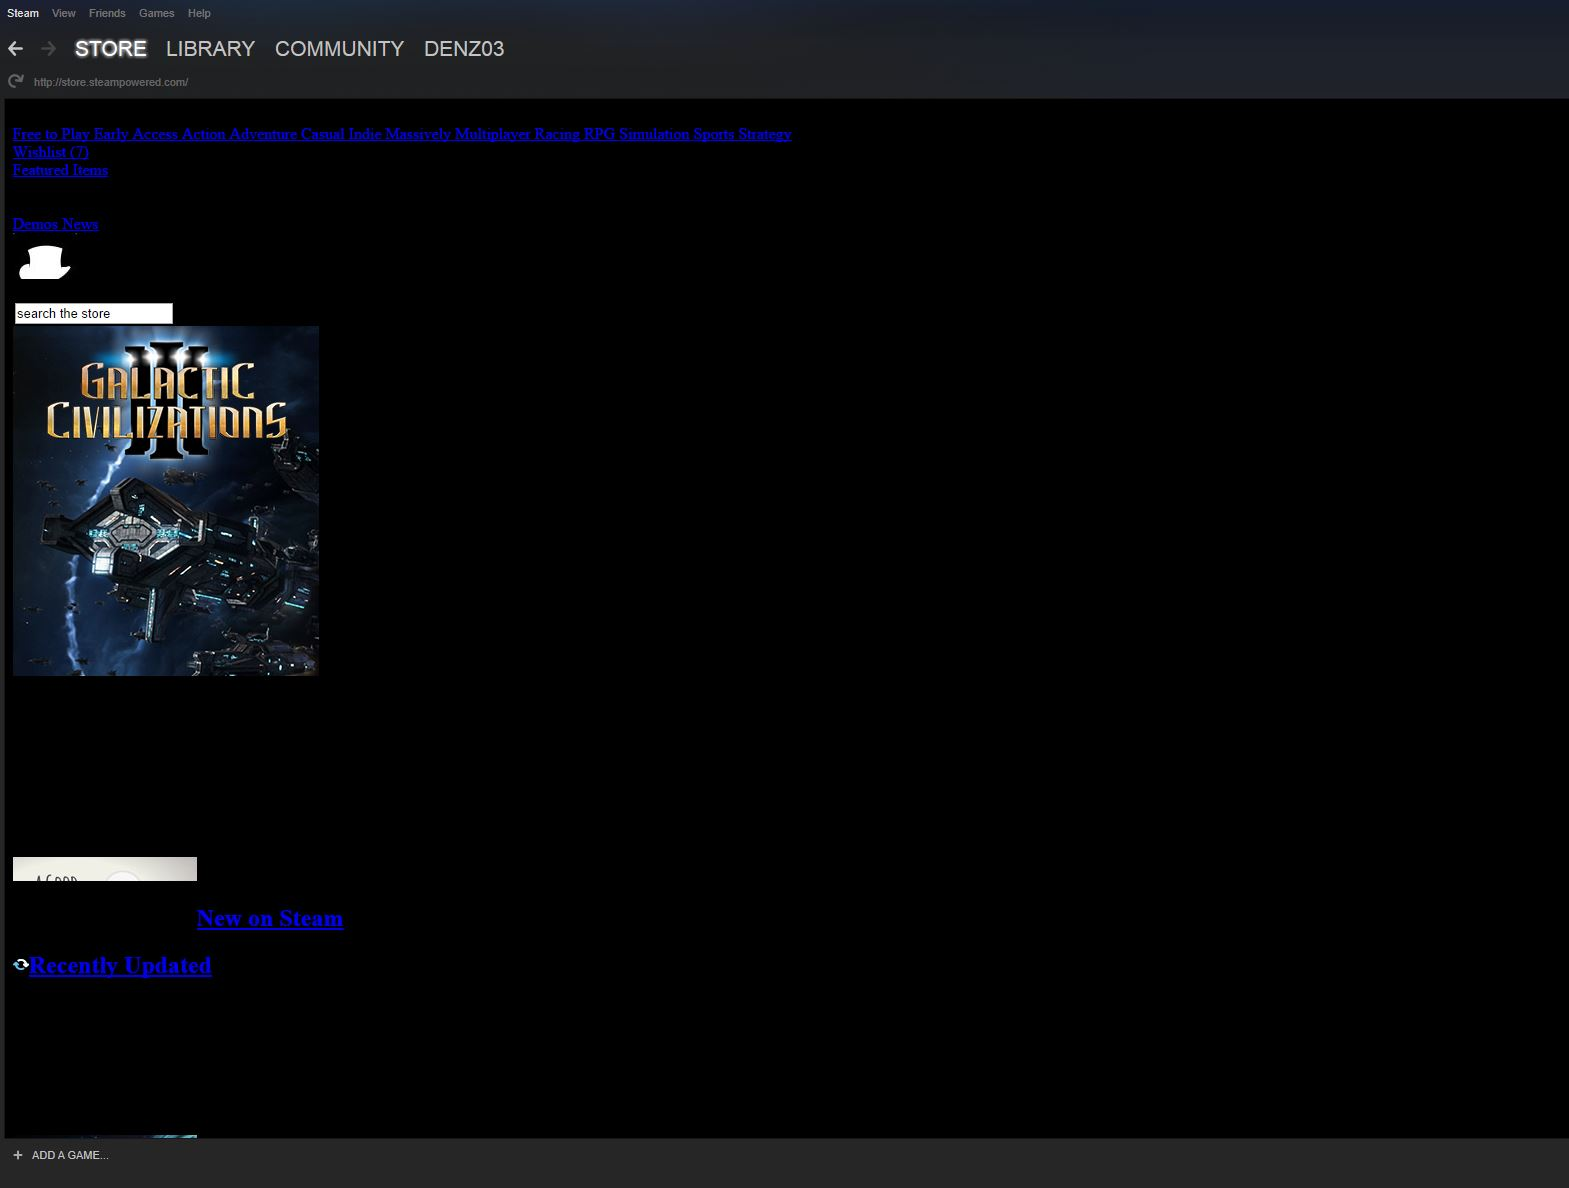 Steam UI in Store and my profile tabs are broken